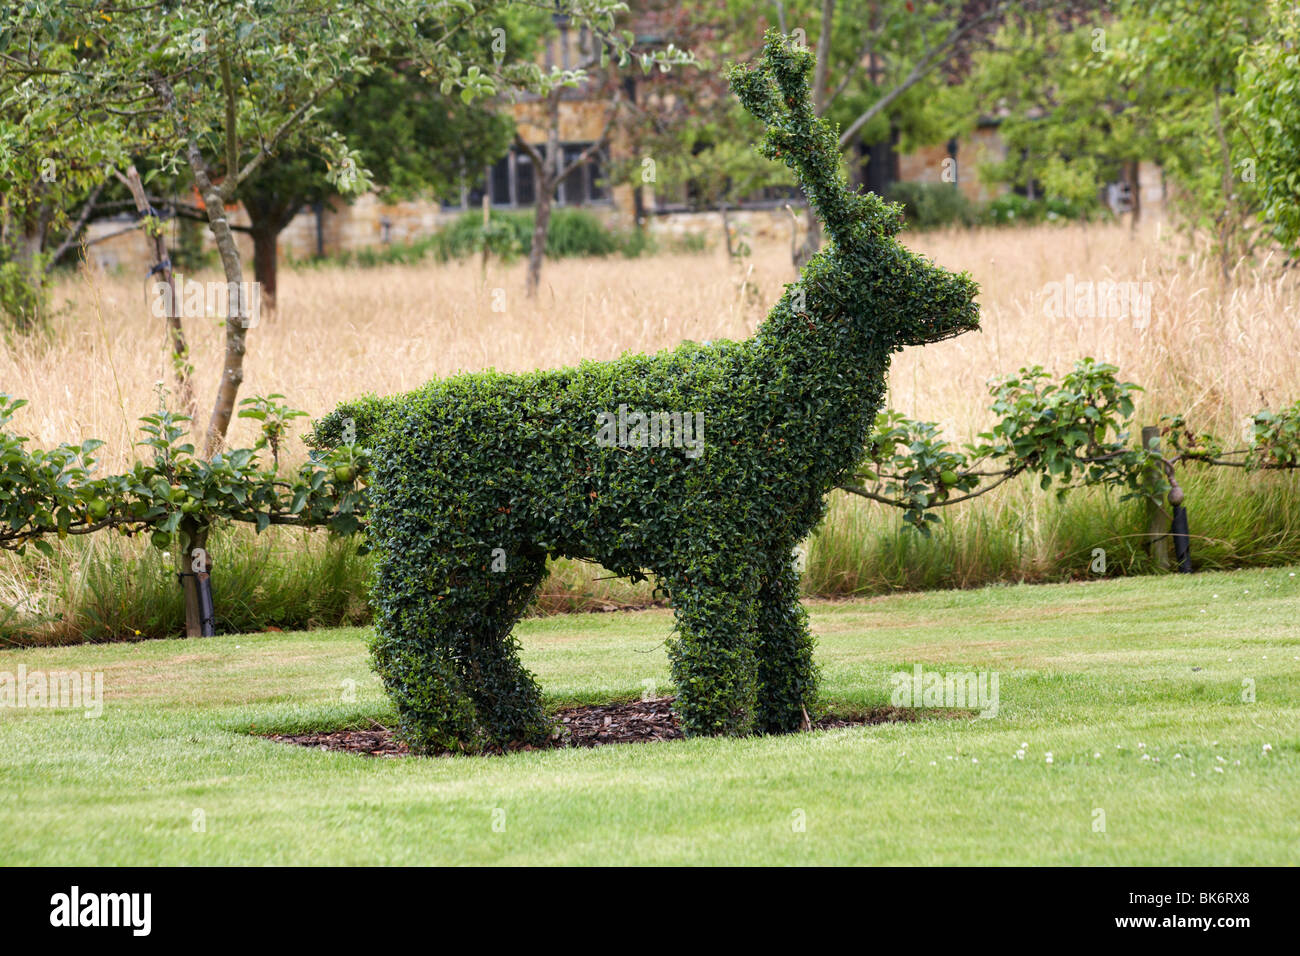 Topiary Tree Bush Cut In The Shape Of A Reindeer Stock Photo Alamy